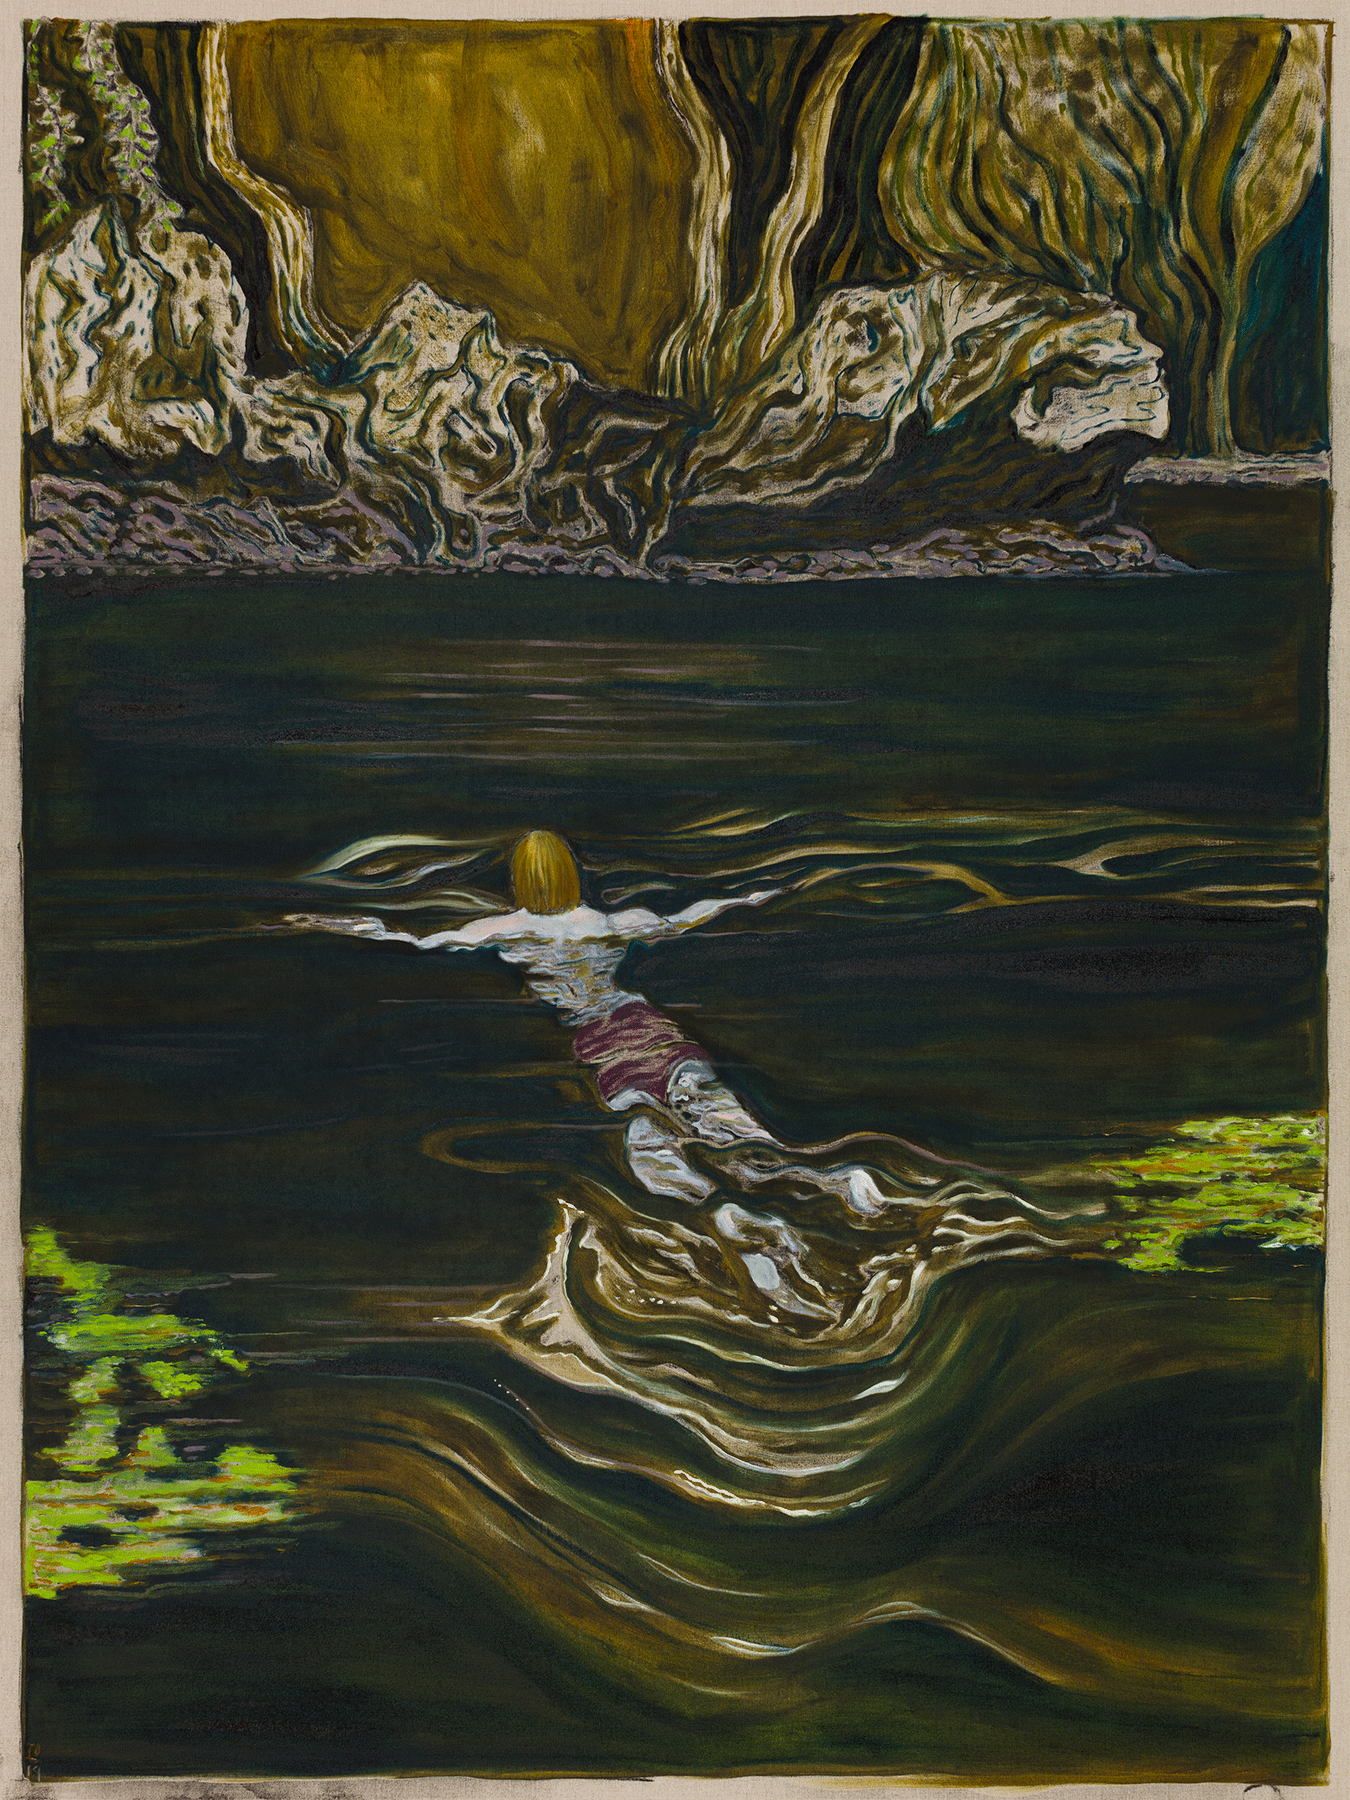 BILLY CHILDISH, toward a shore, 2019